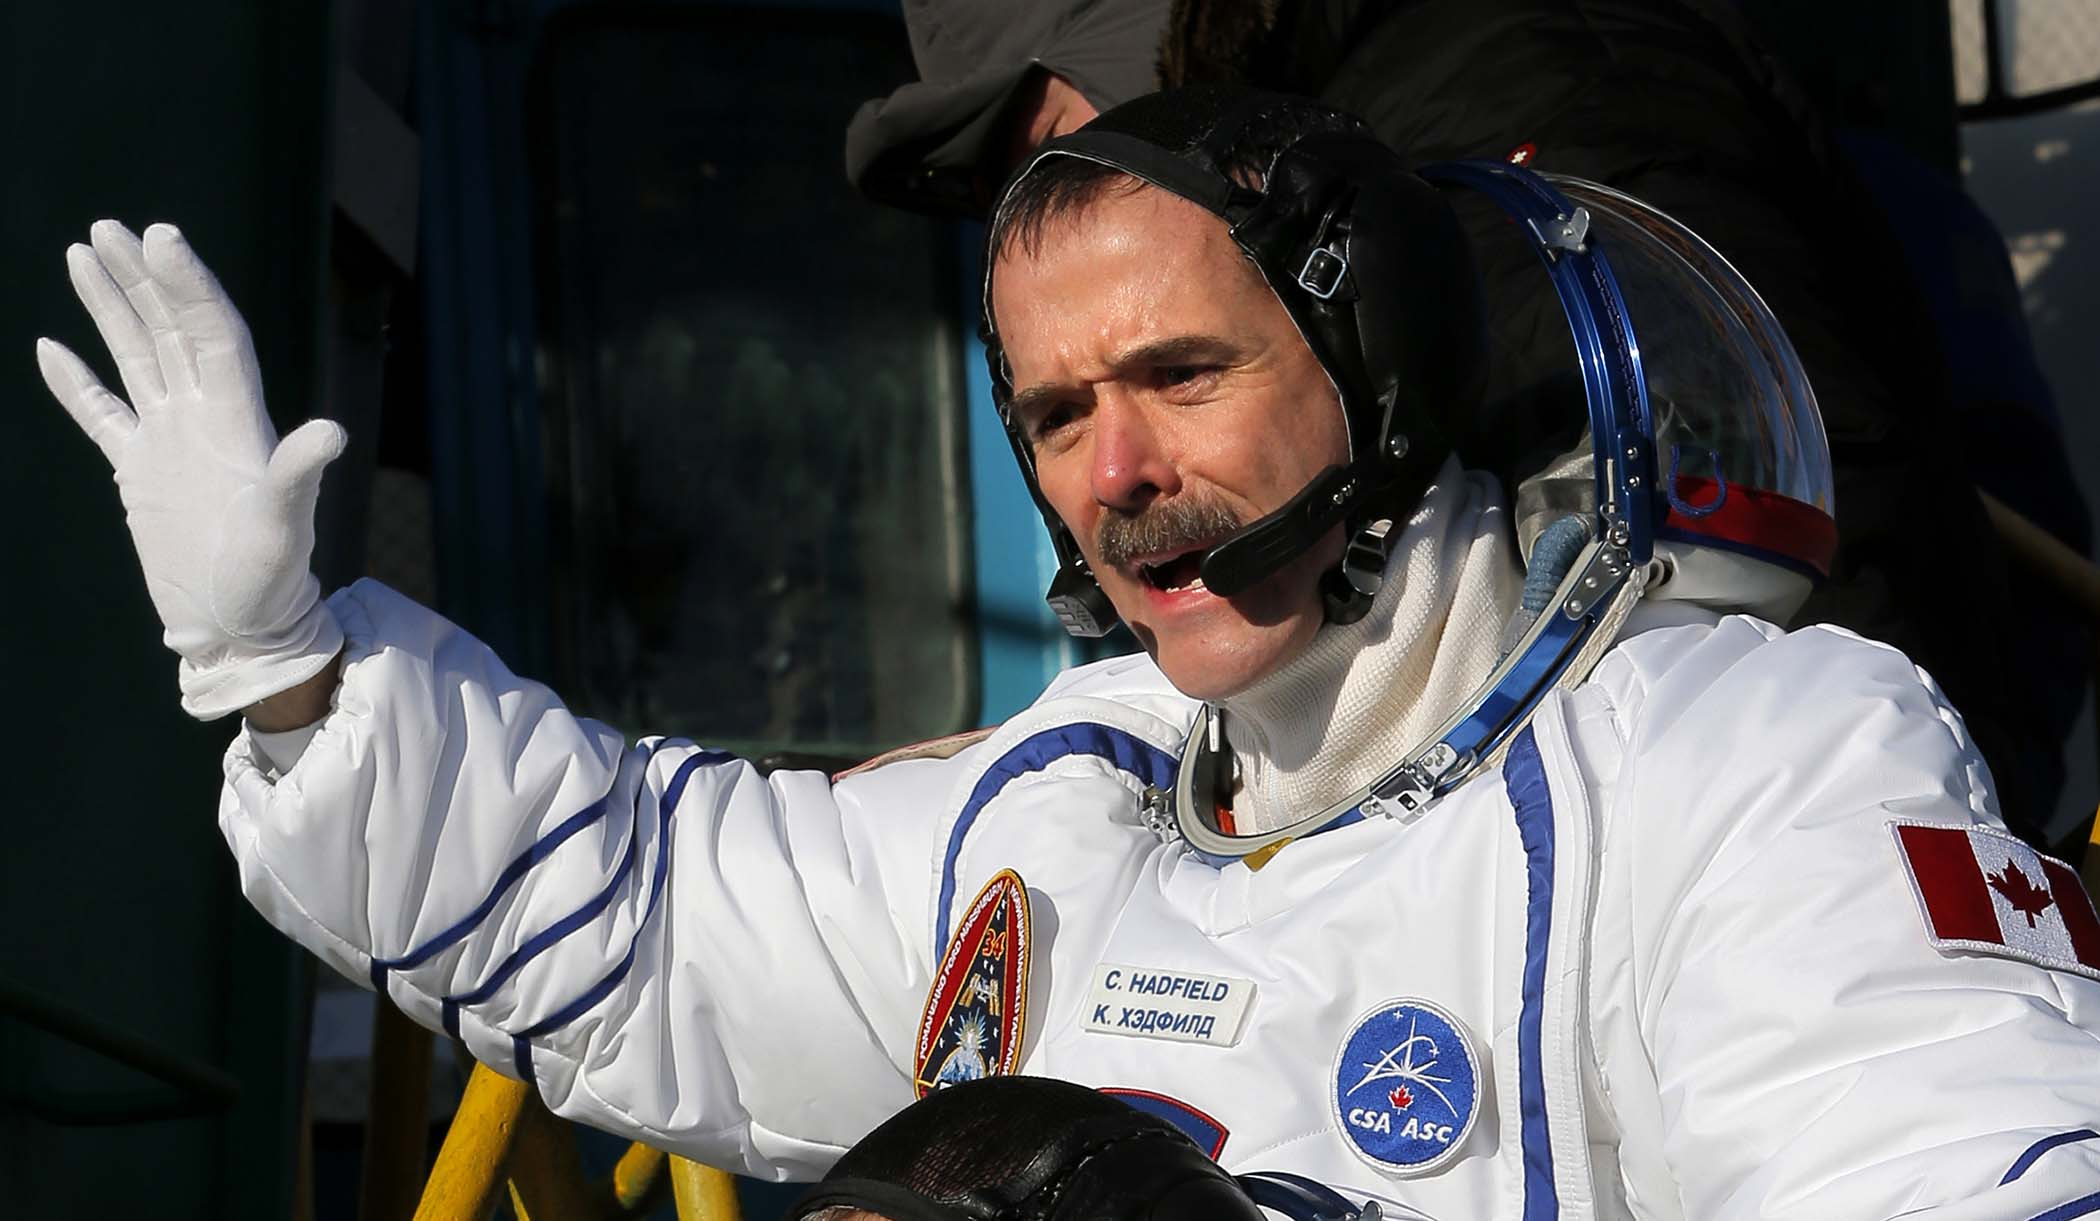 Canadian astronaut Chris Hadfield, a crew member of the mission to the International Space Station, gestures prior to the launch of the Soyuz-FG rocket at the Russian leased Baikonur cosmodrome inKazakhstan, December 19, 2012. (Dmitry Lovetsky/Associated Press) Provided image